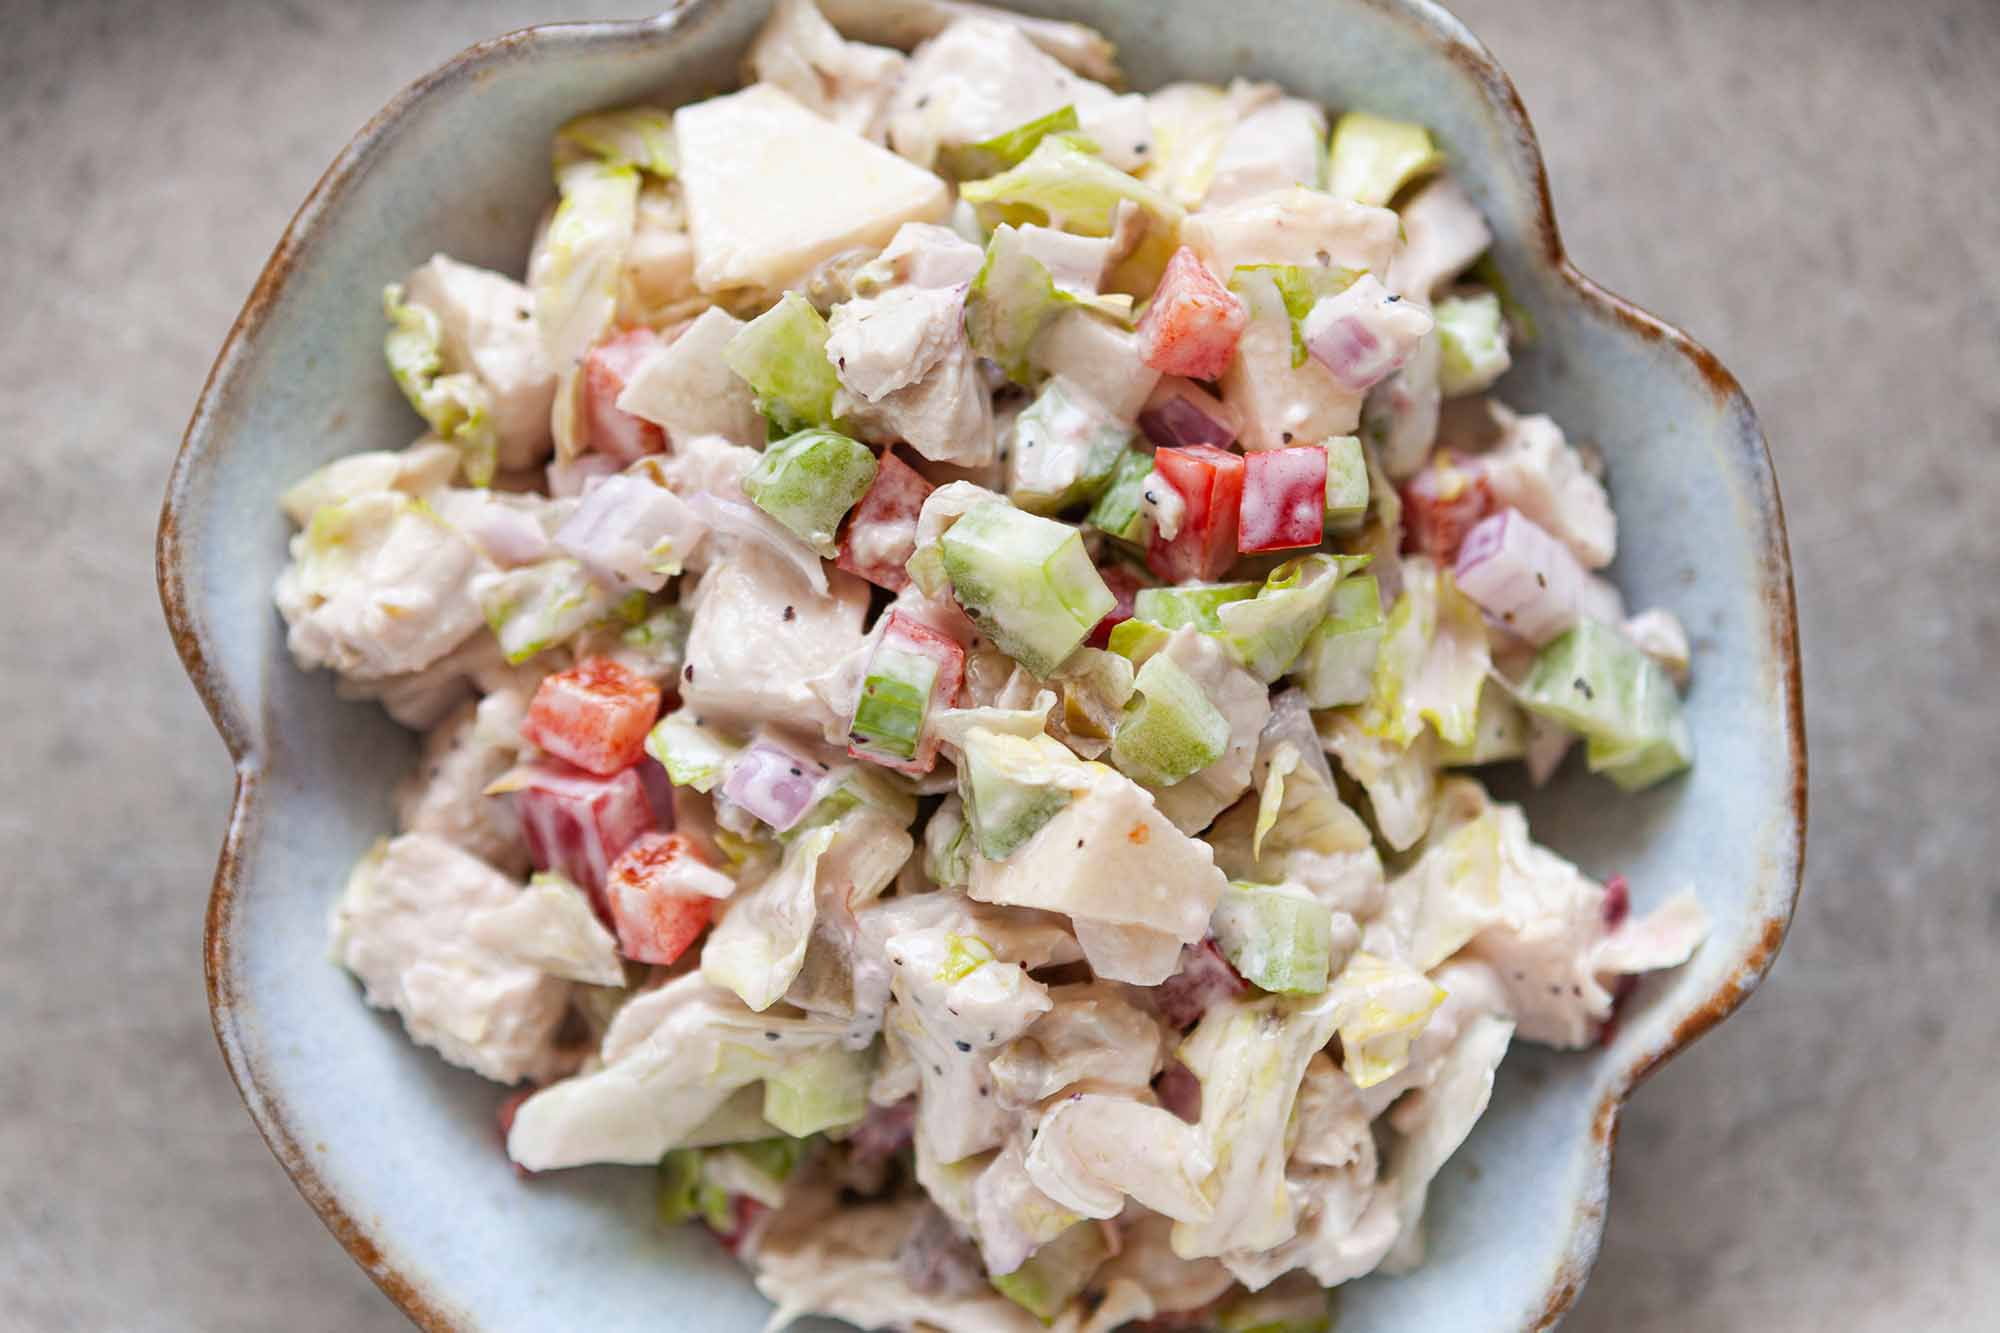 Chicken Salad Recipe Without Celery